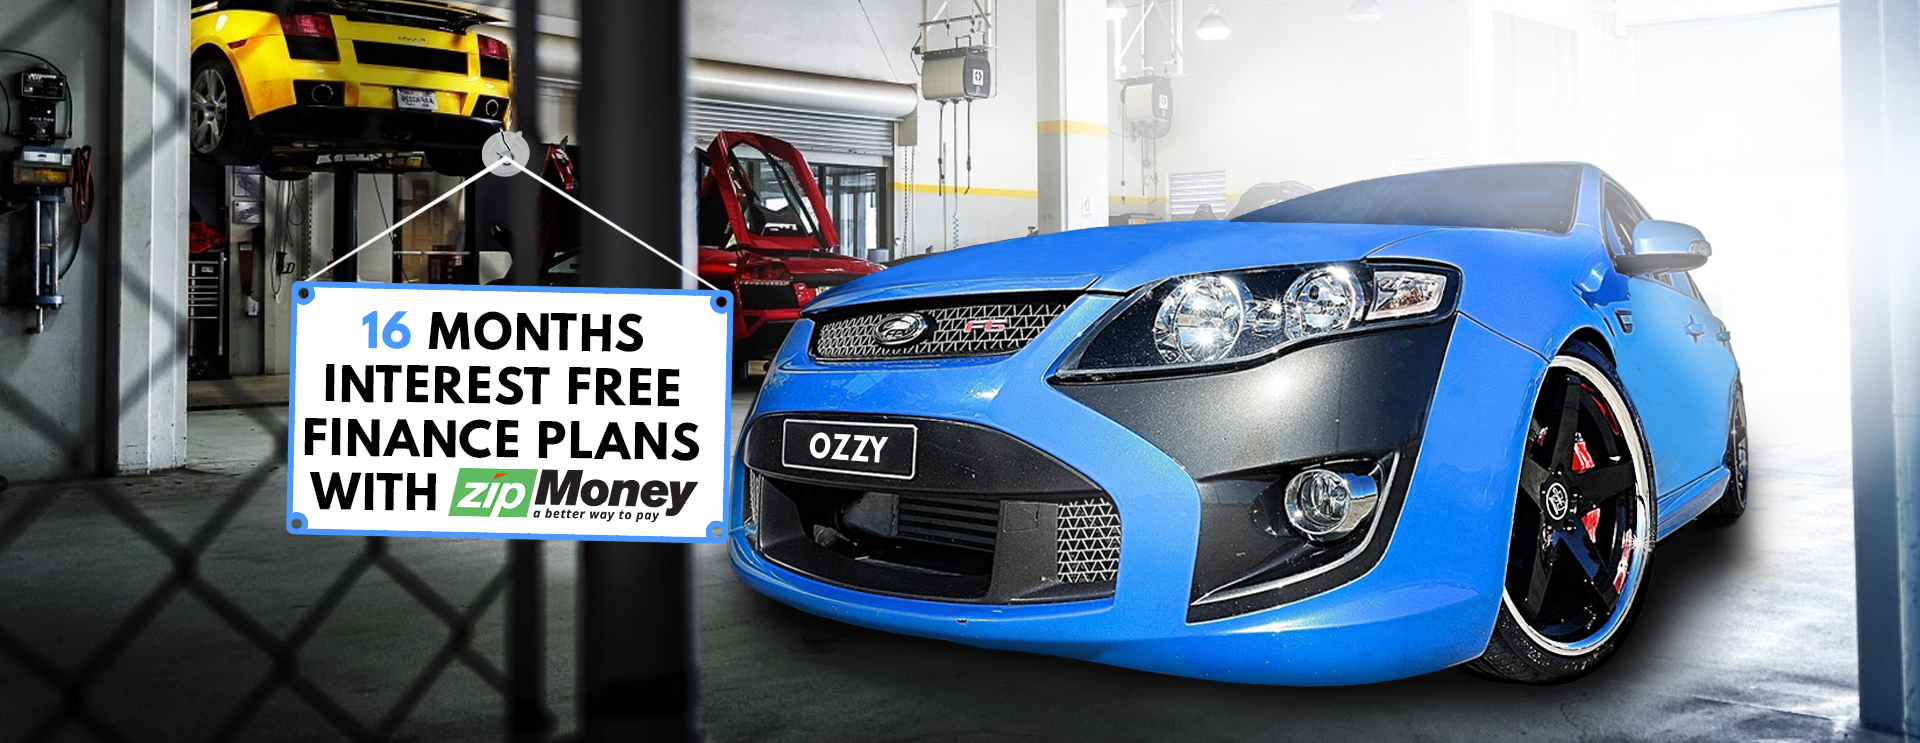 Ozzy Tyres Promo Image